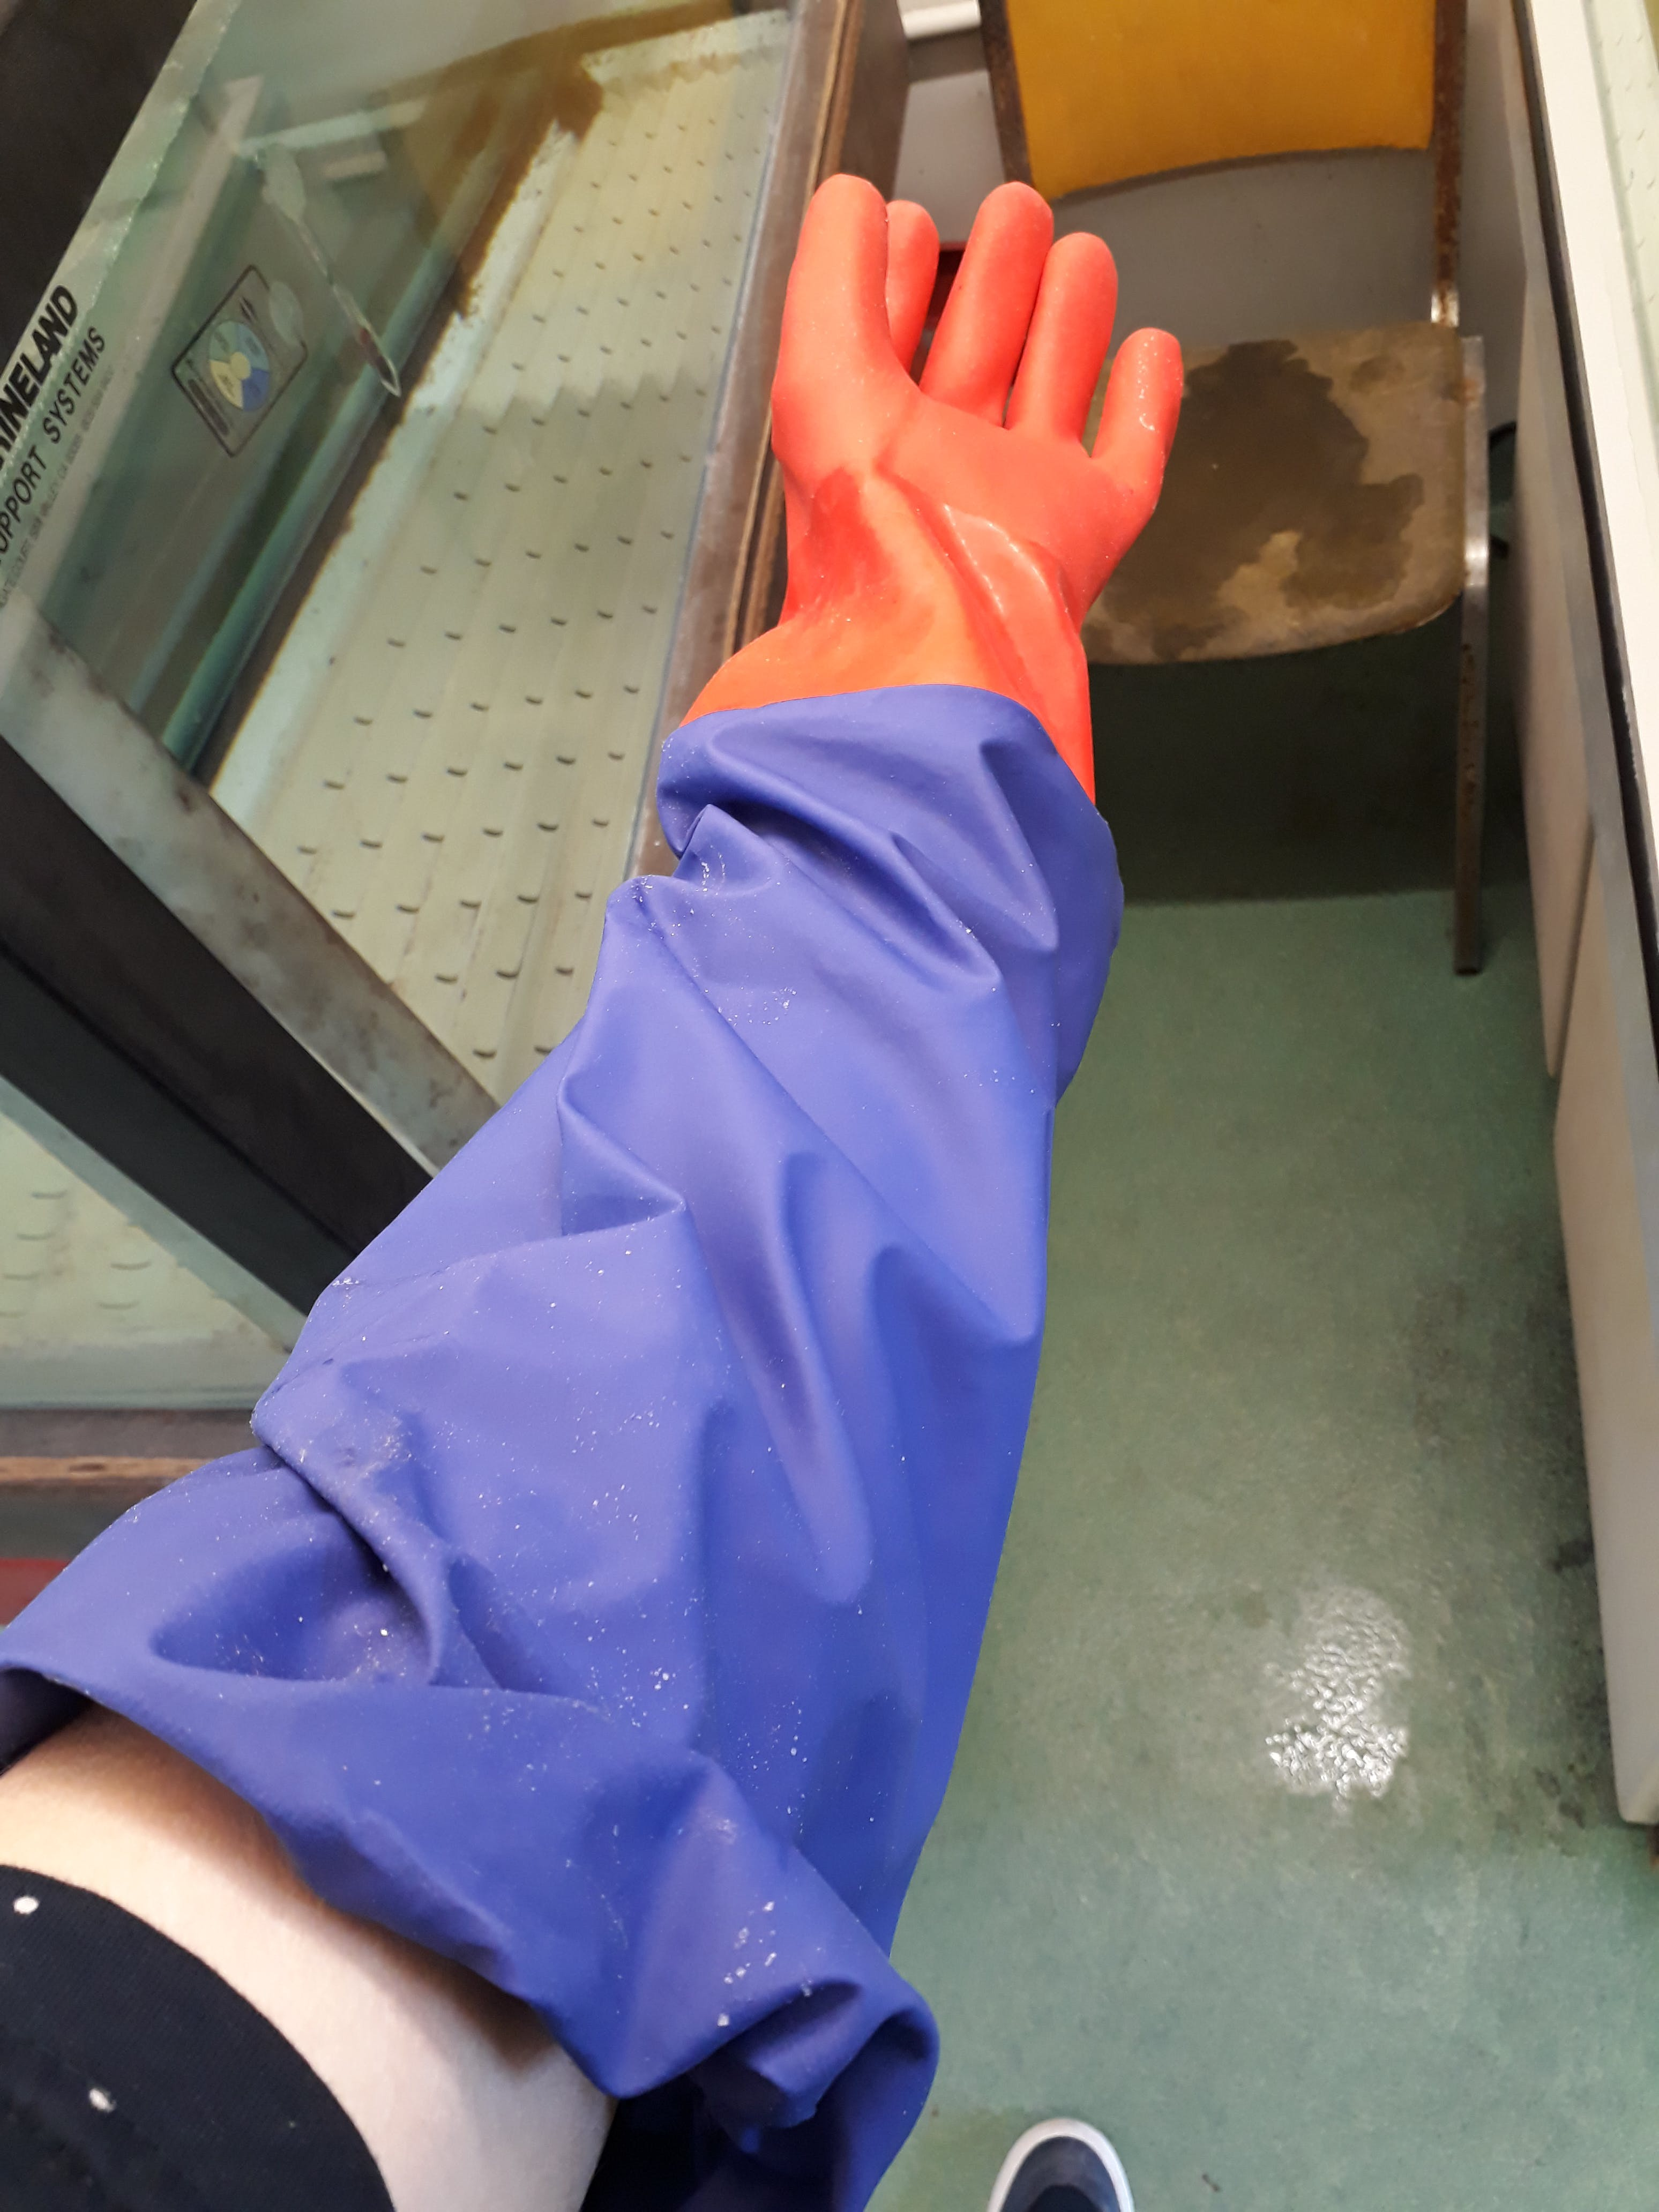 A shoulder length rubber glove used in a research lab to reach into fish tanks. If contaminated, would be thrown in the garbage.